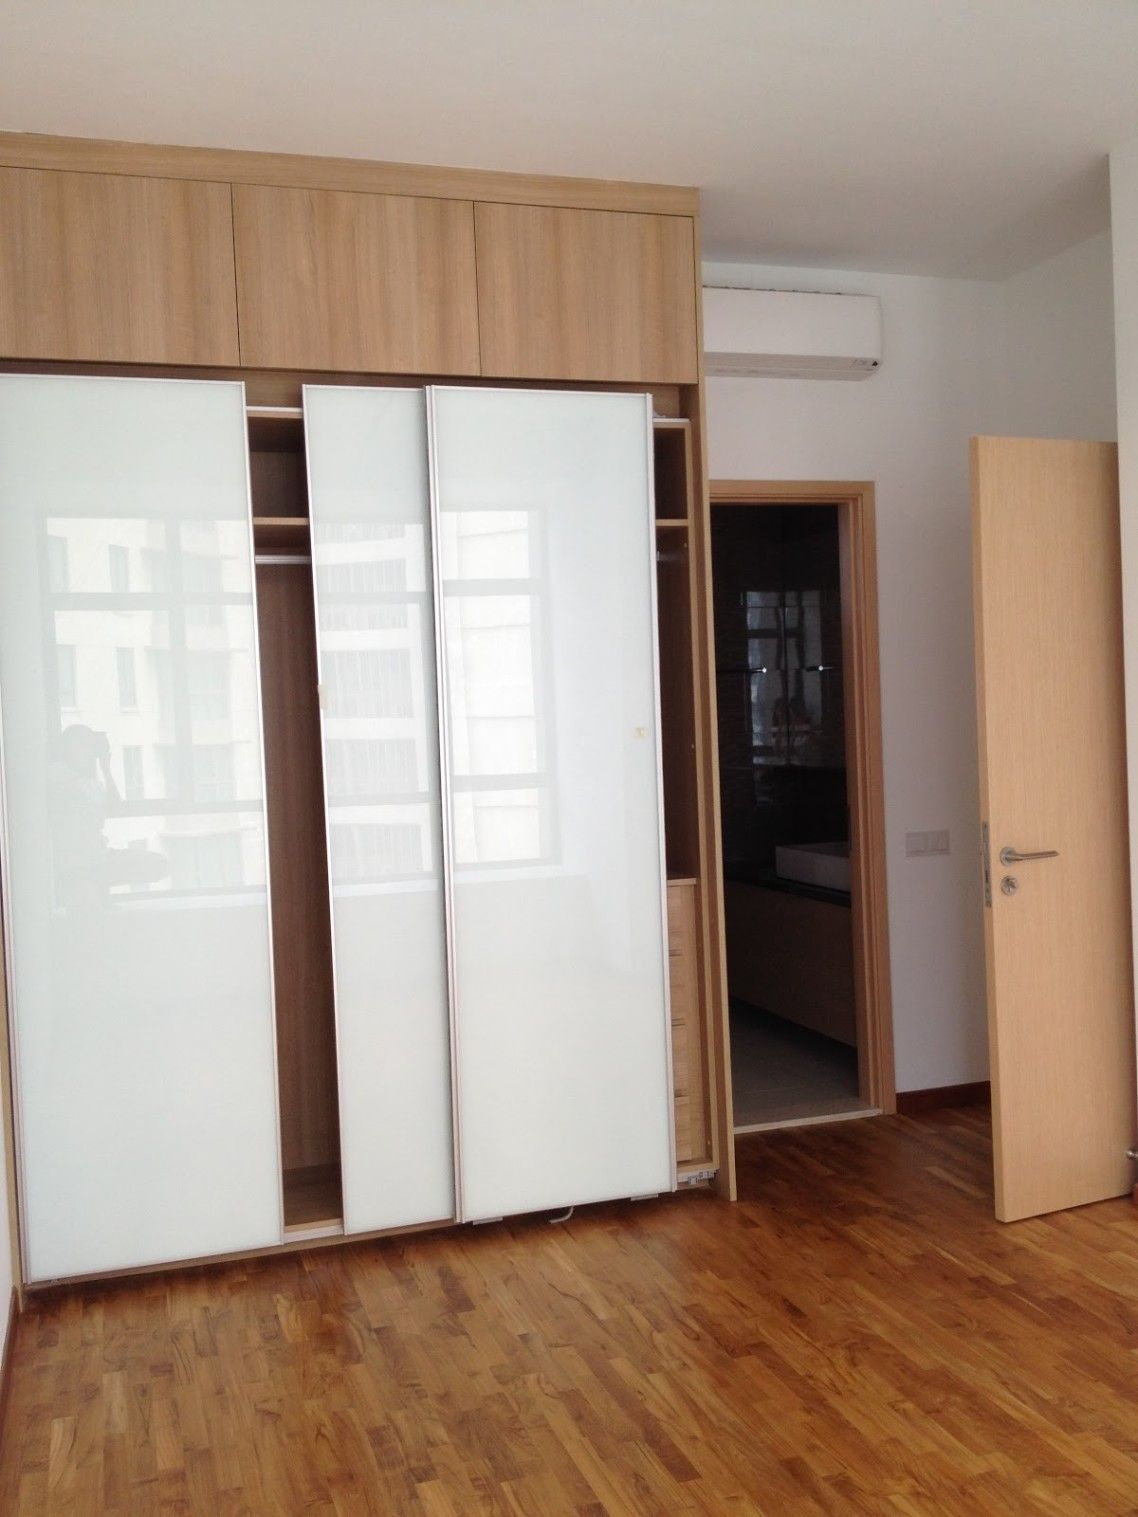 Unpolished Oak Wood Buil In Wardrobe For Small Bedroom With White Veneer Glossy Plywood Sliding Door